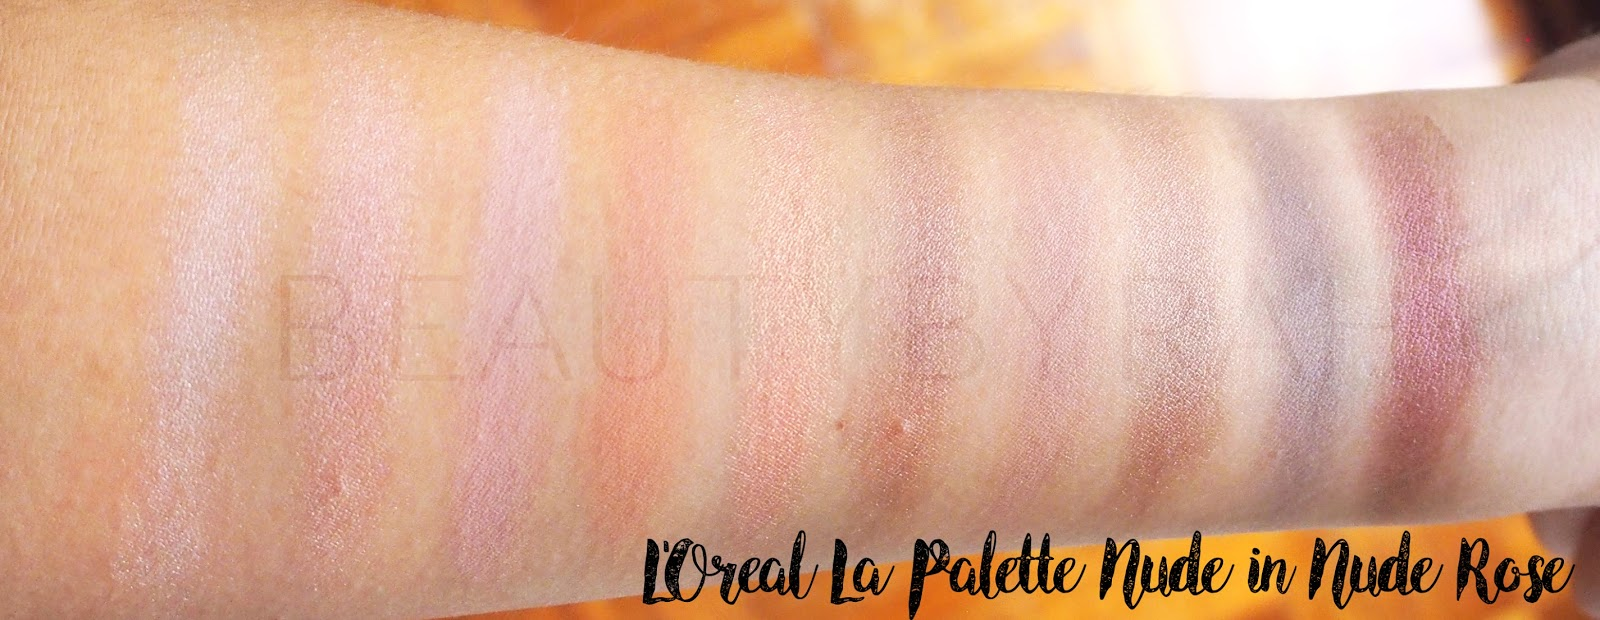 l'oreal la palette nude swatches in nude rose